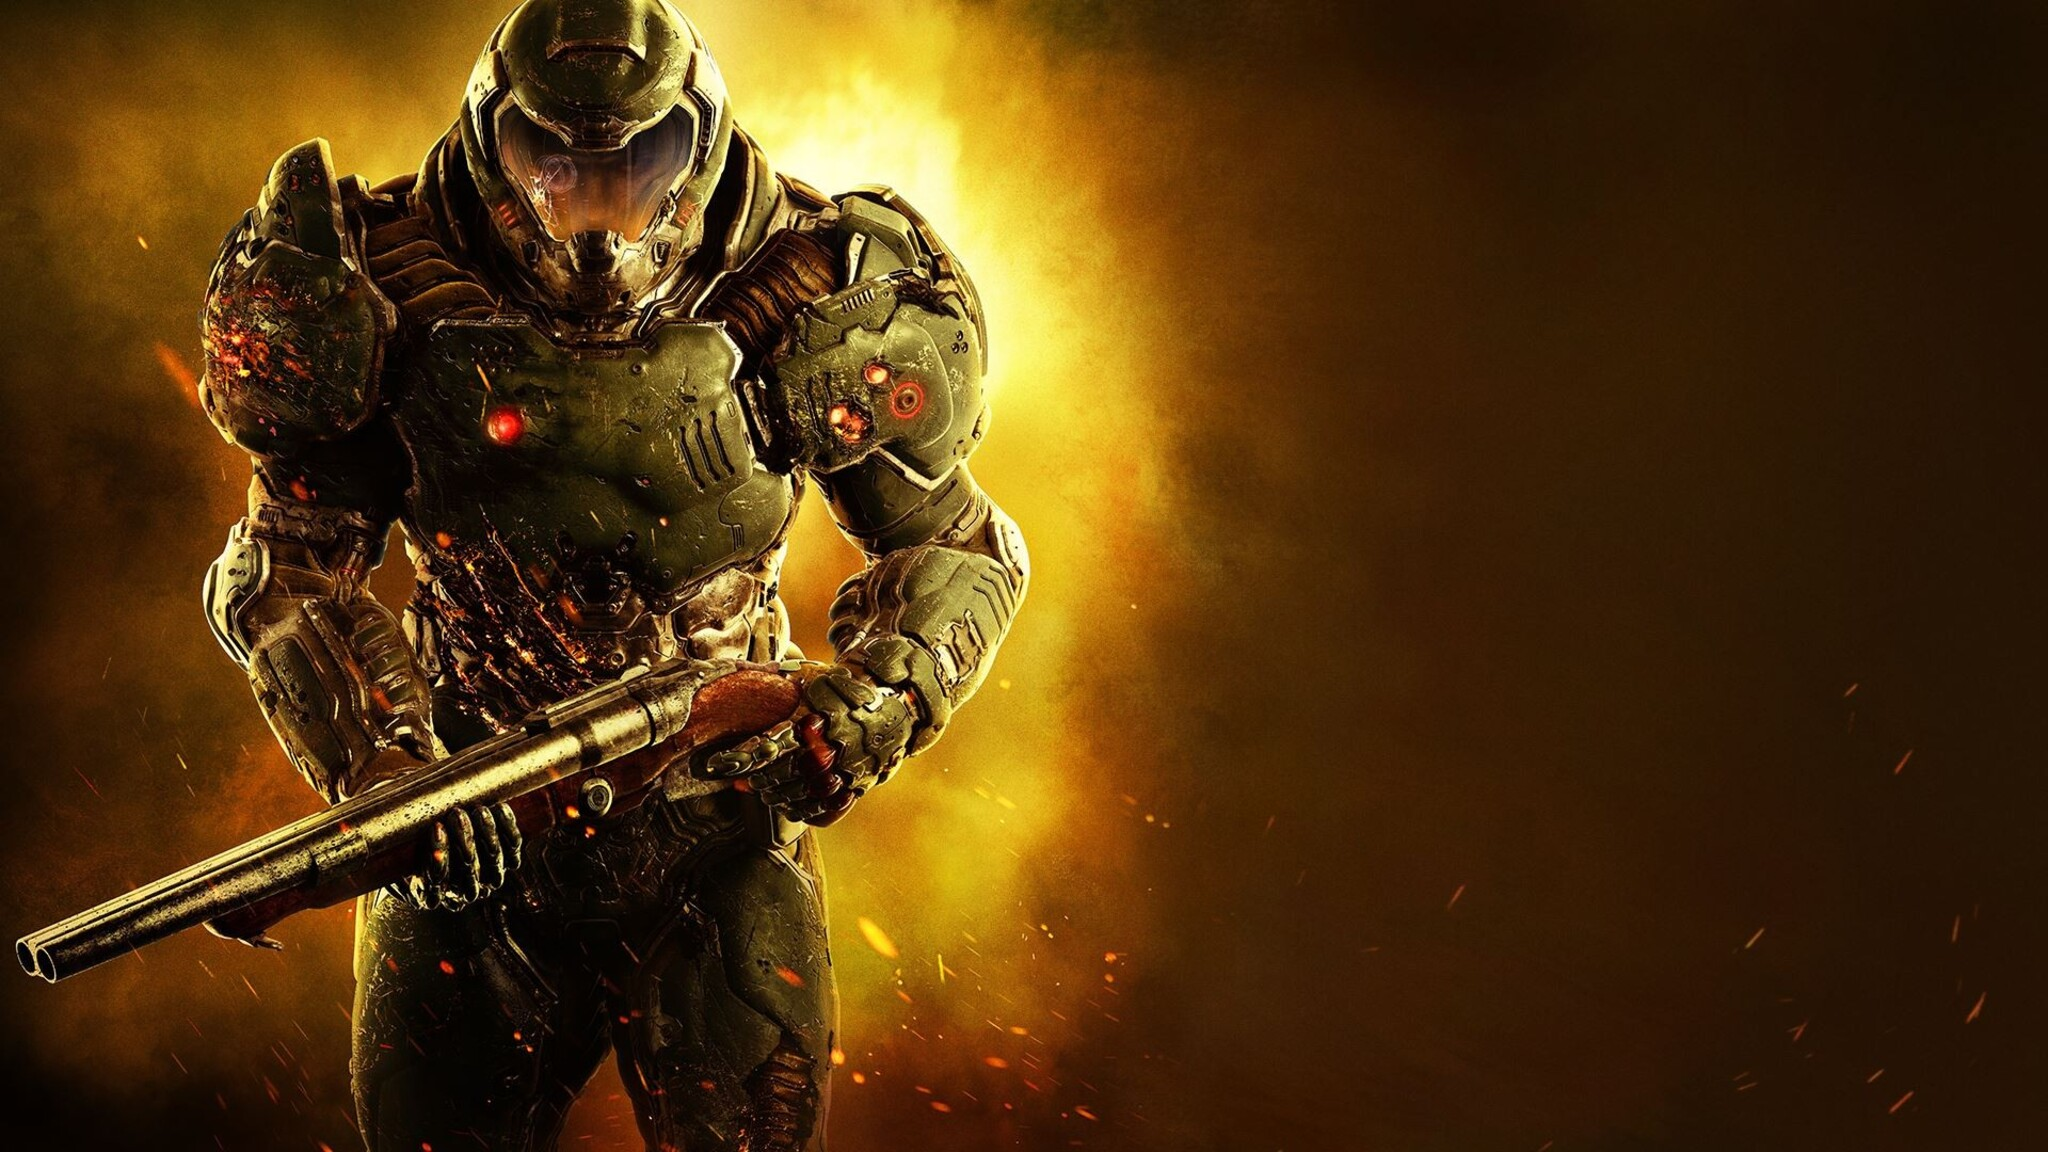 2048x1152 Doom Game HD Resolution 4k Wallpapers Images